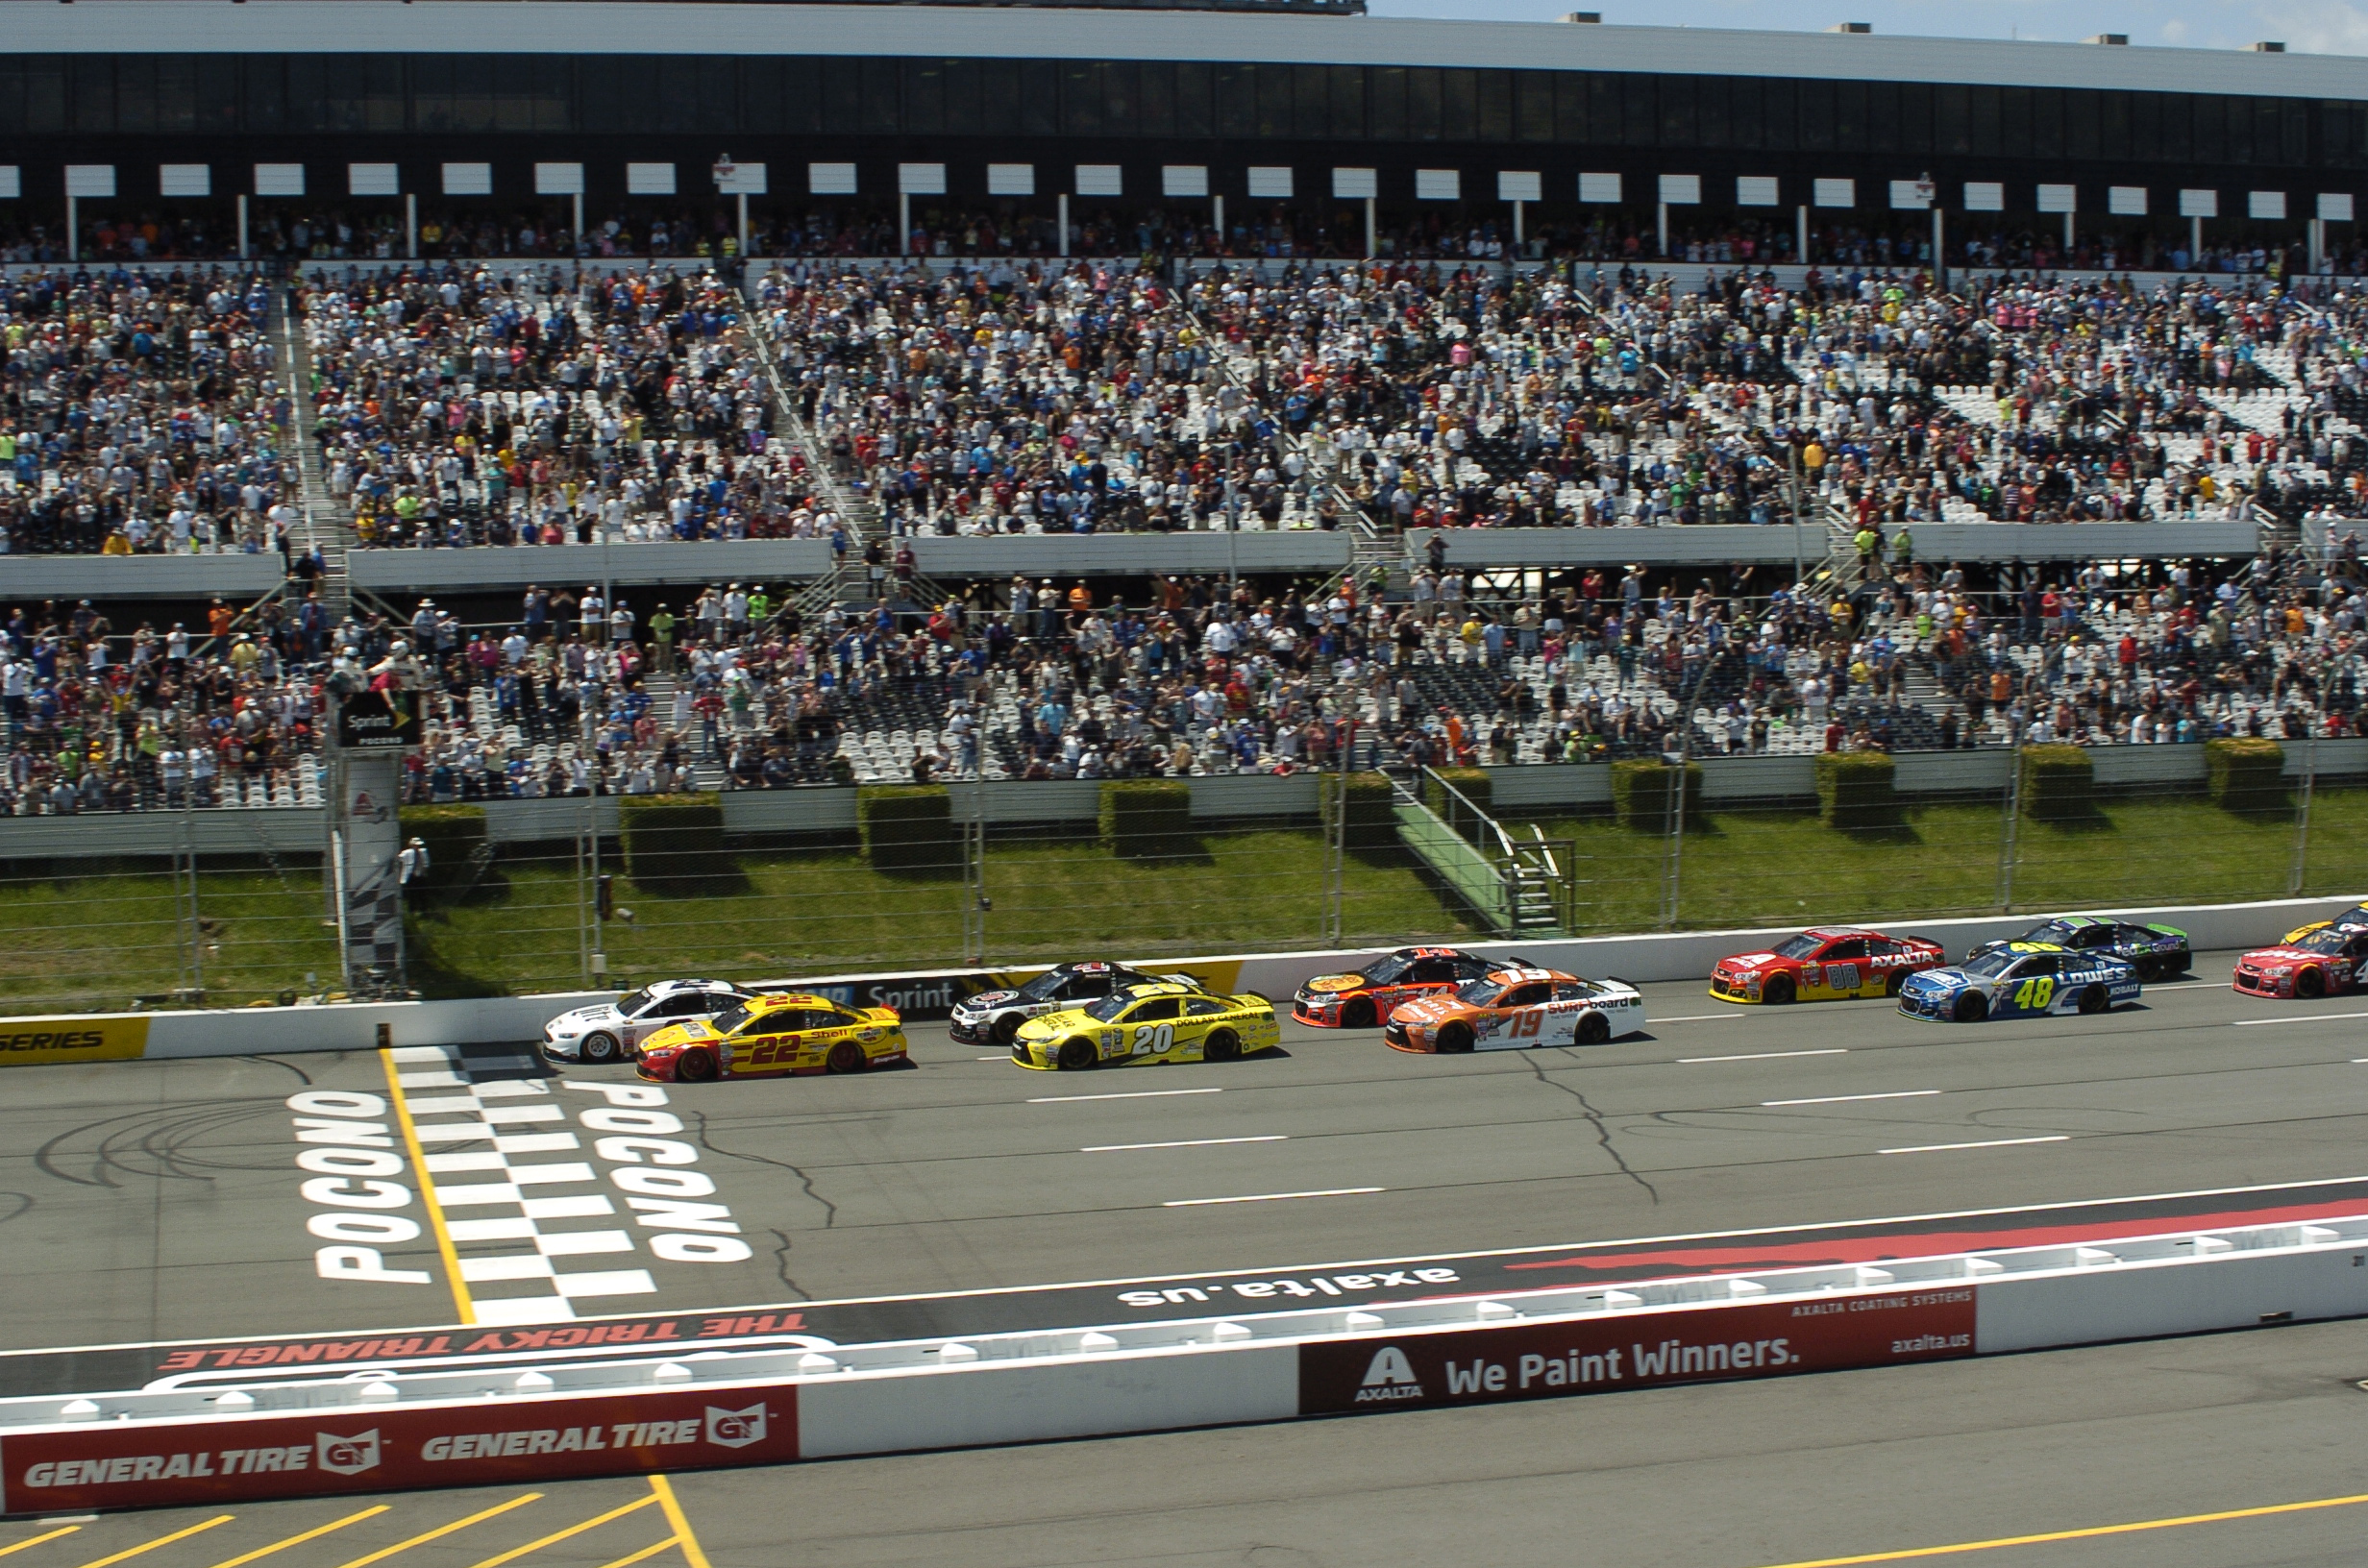 Image of cars on track at Pocono Raceway